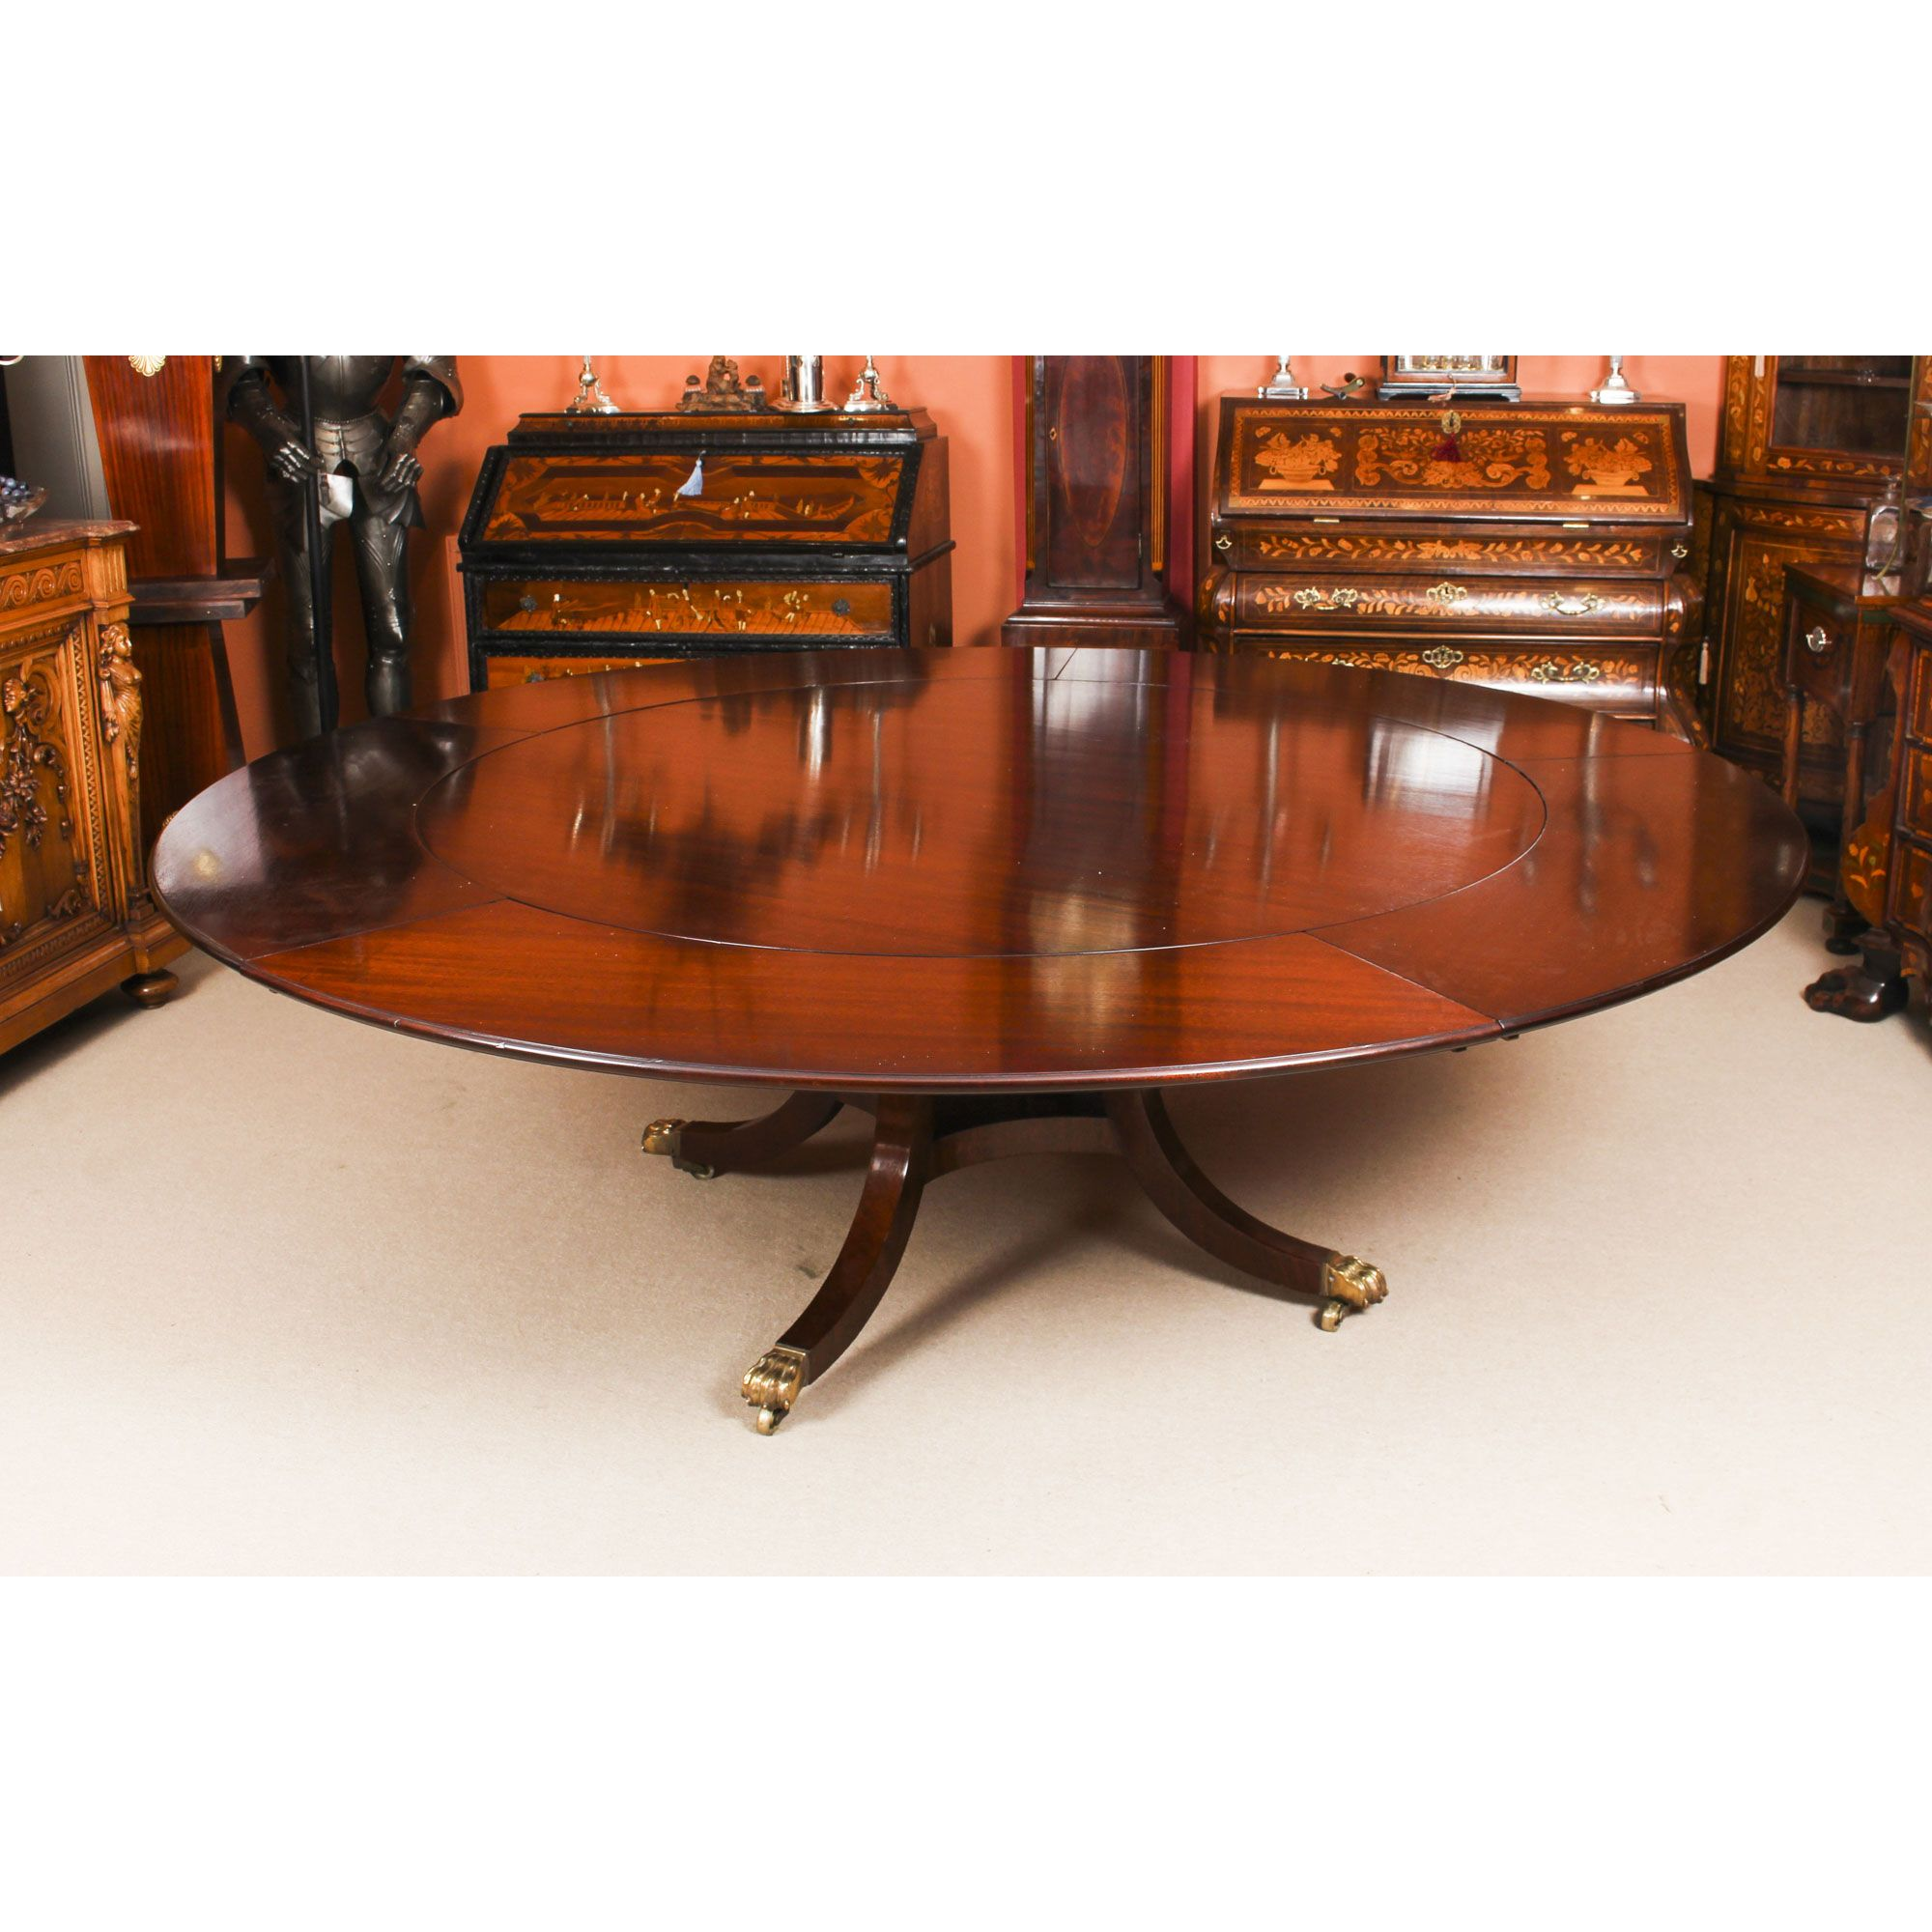 Vintage 7ft 4 Diam Jupe Mahogany Dining Table By William Tillman